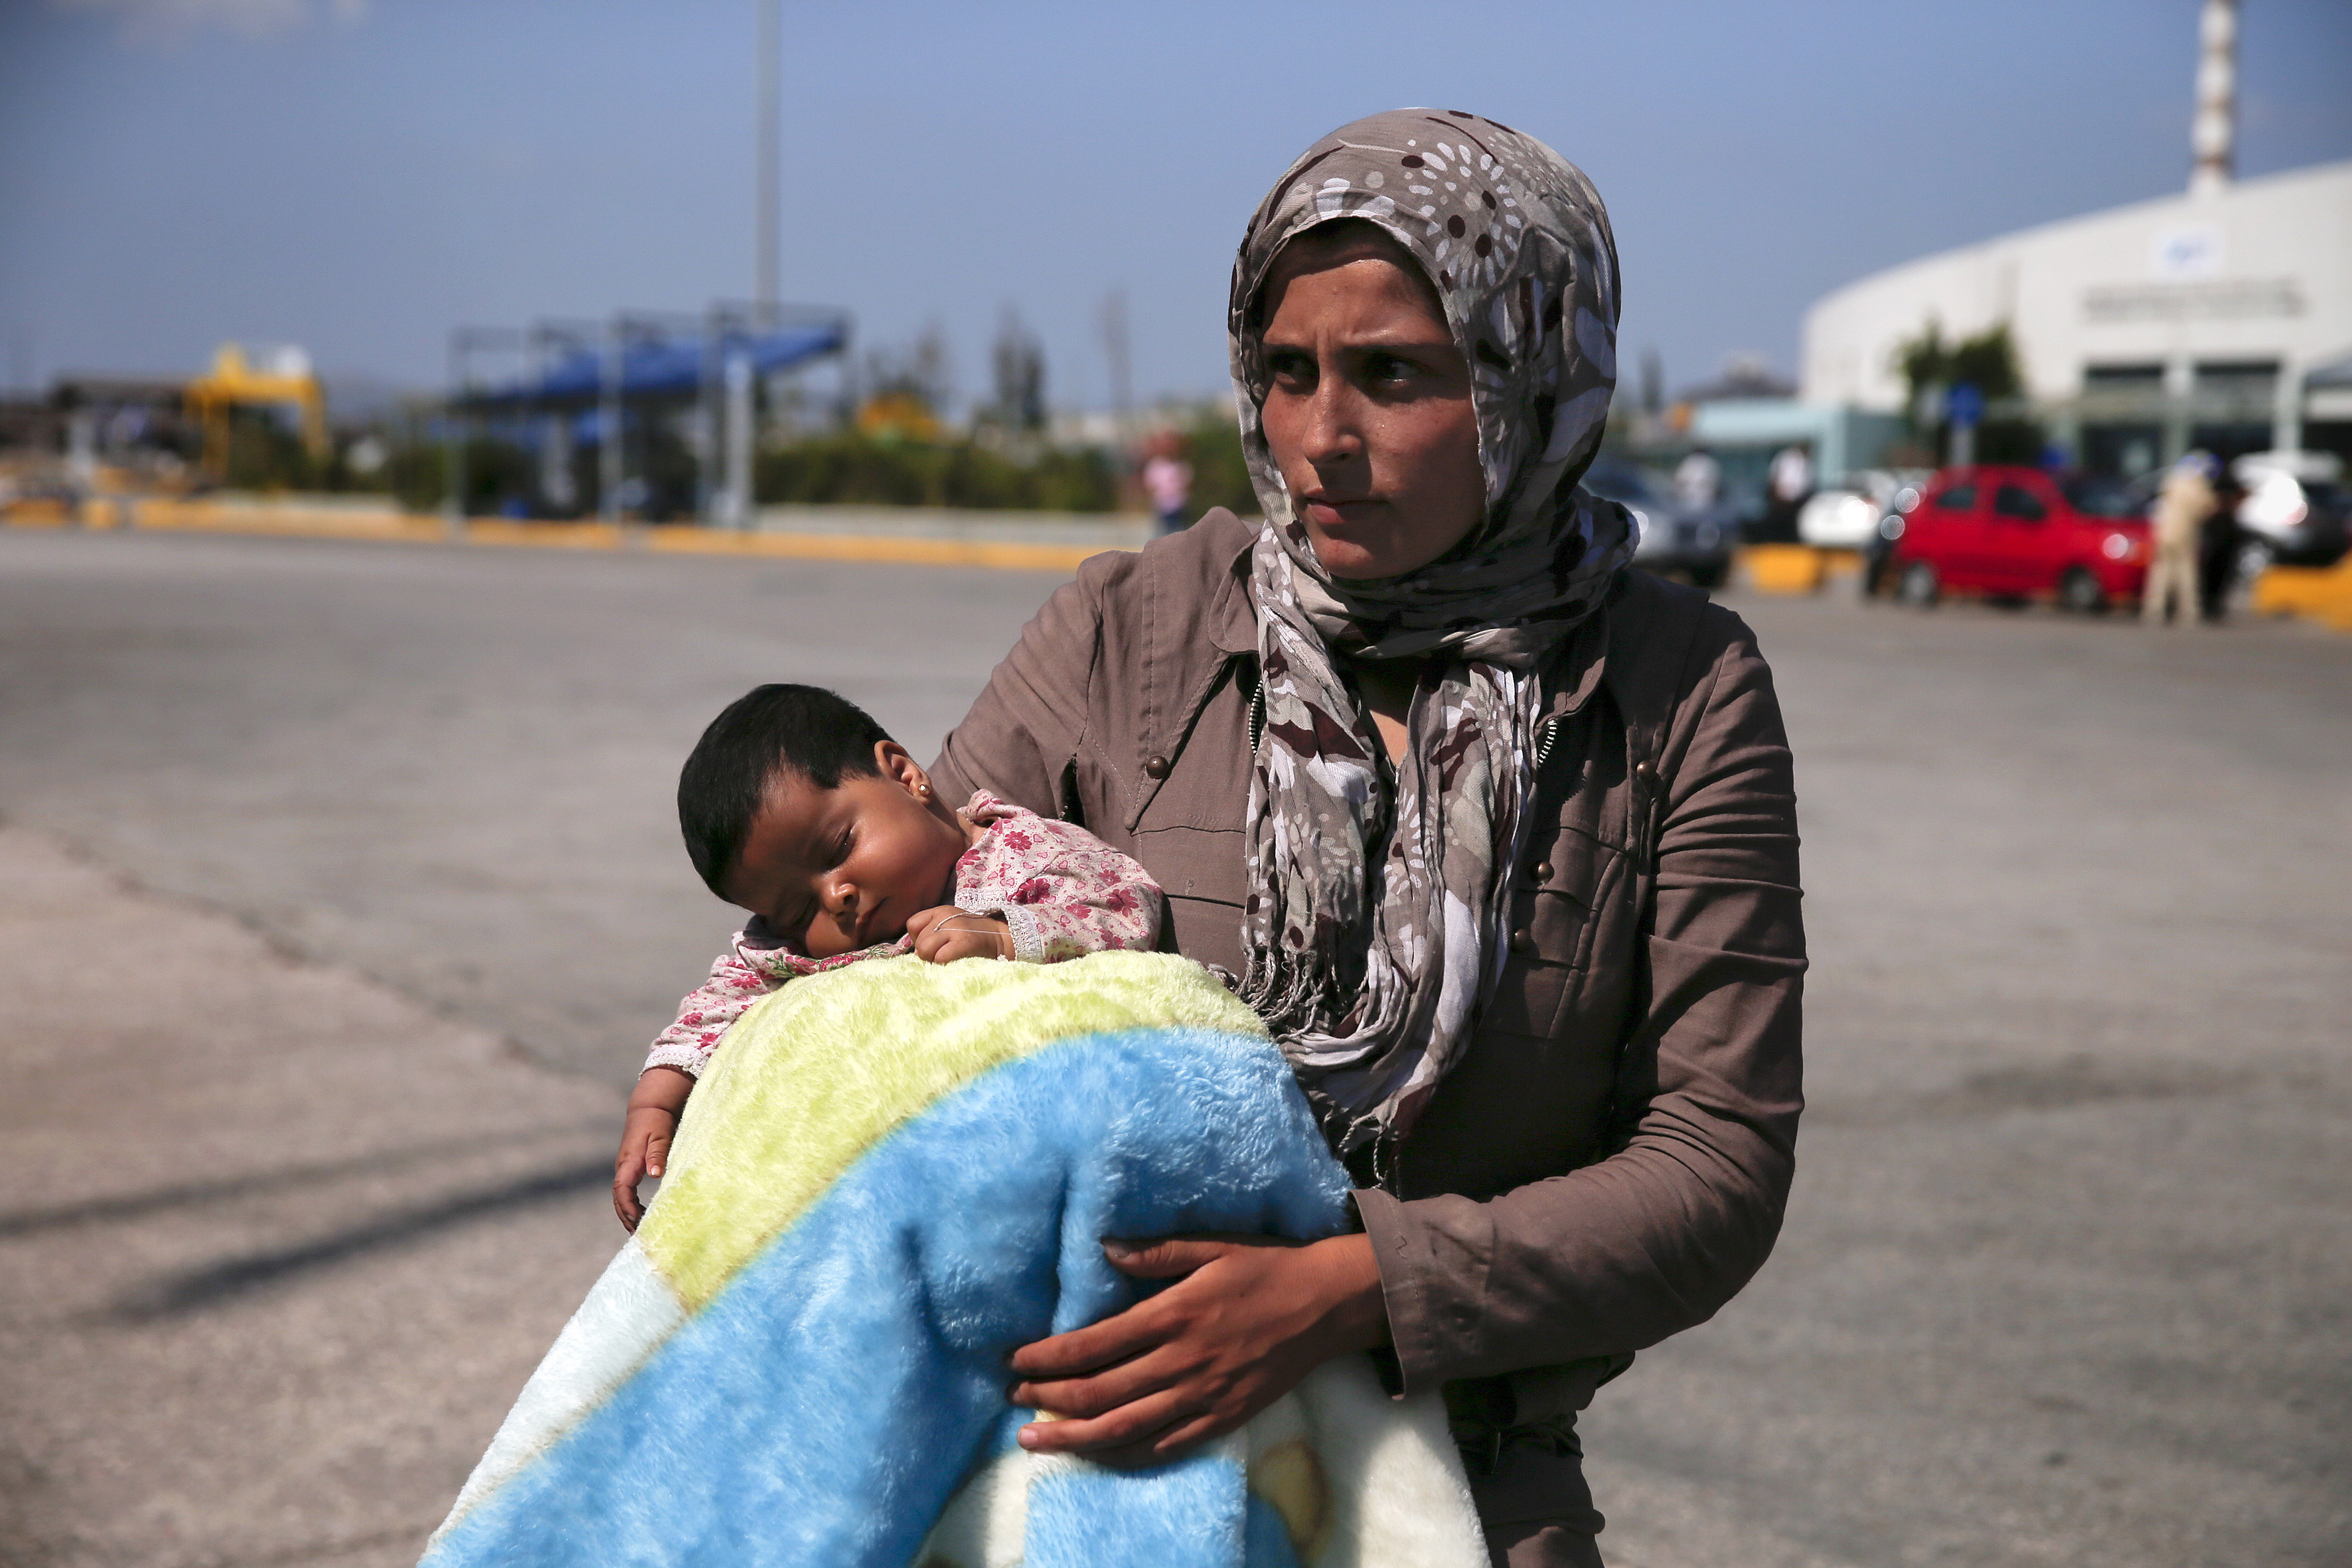 A Syrian refugee holds her baby following their arrival onboard the Eleftherios Venizelos passenger ship at the port of Piraeus, near Athens, Greece on Sept. 8, 2015.